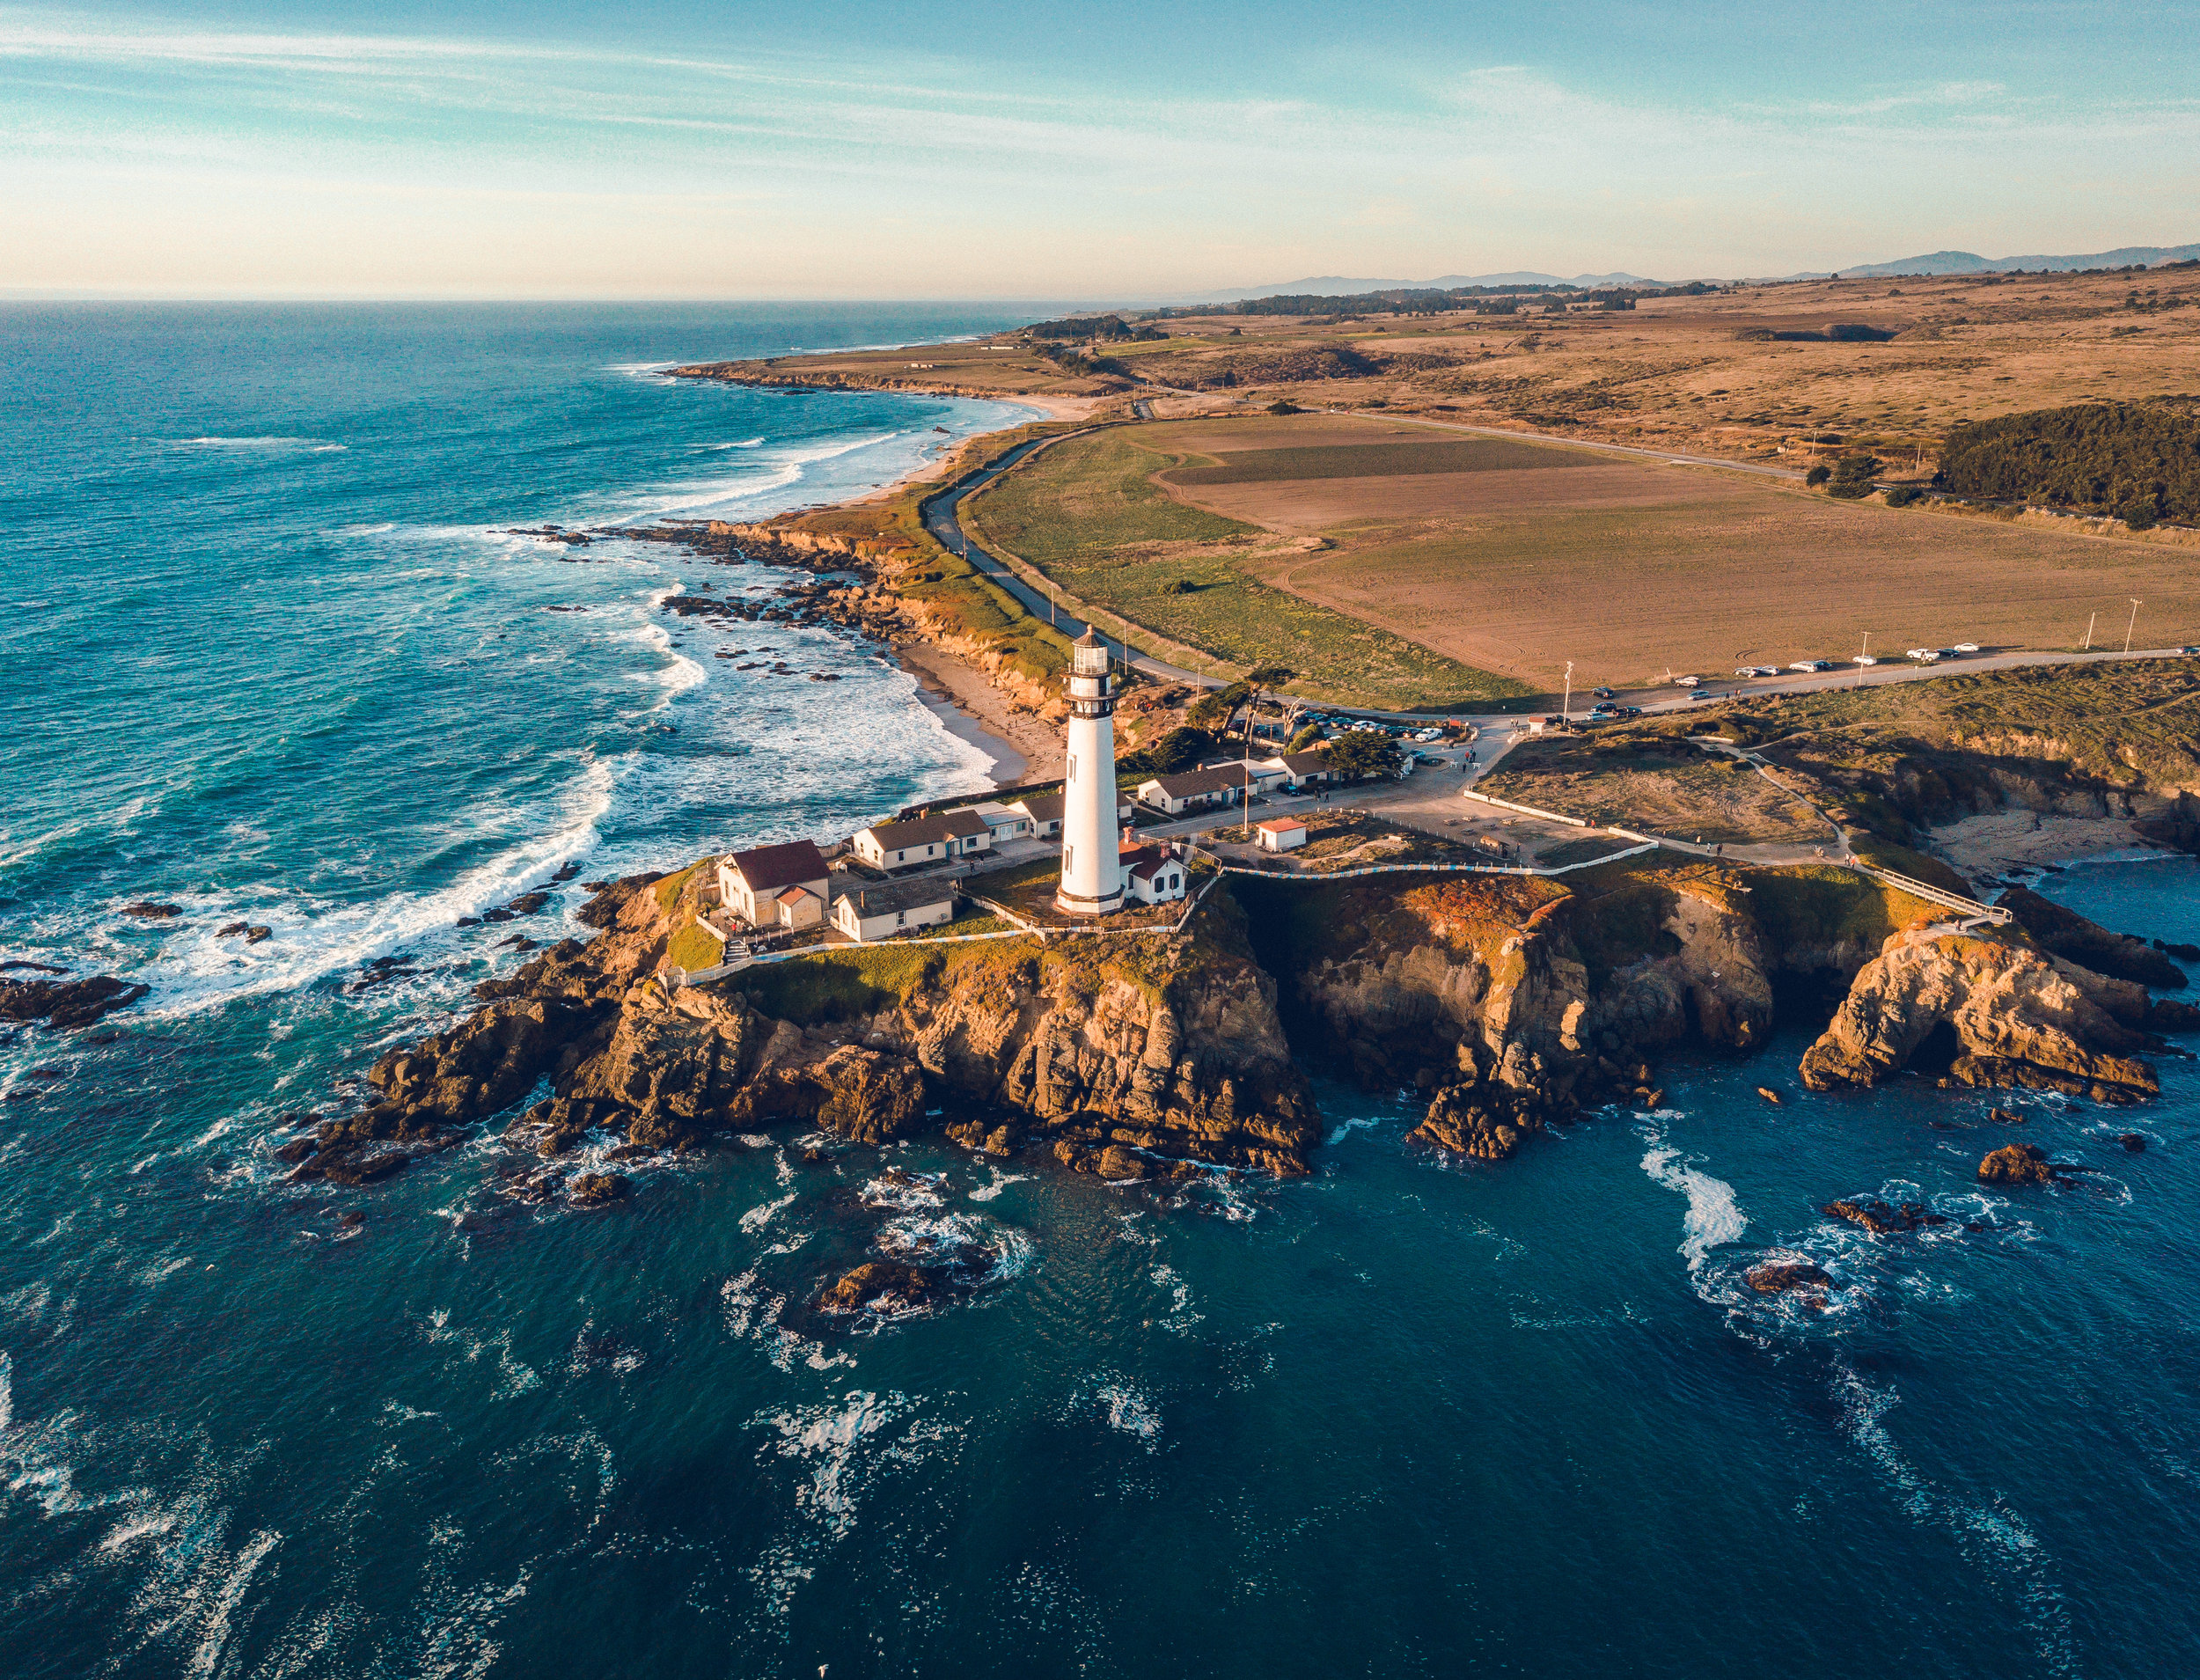 sunet_at_pigeon_point.jpg